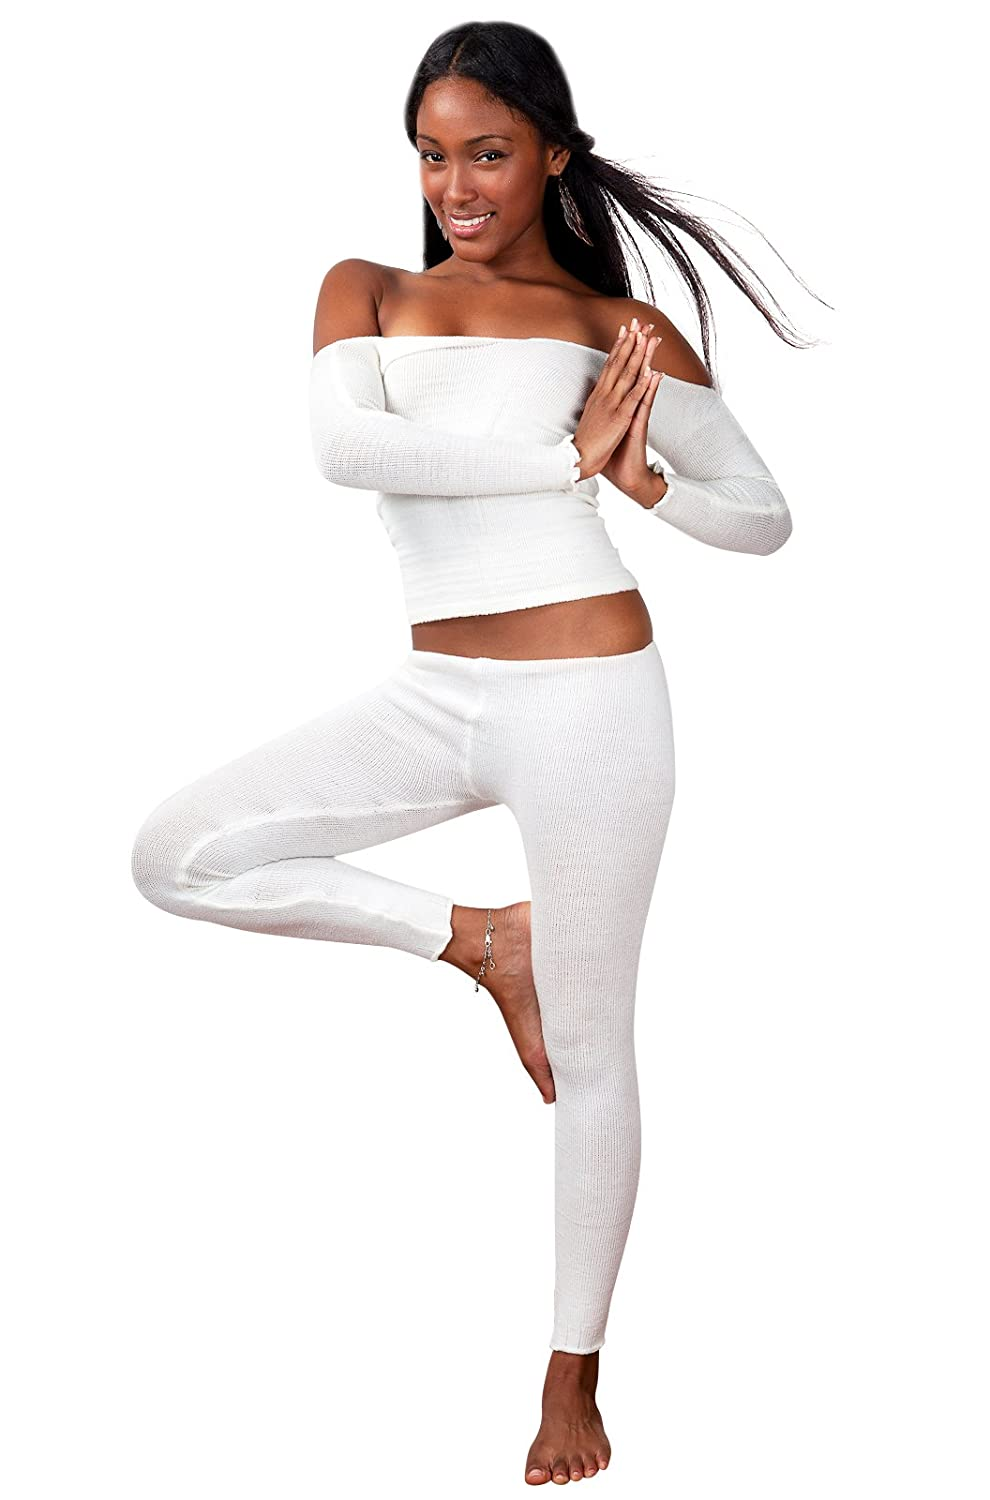 Yoga Tart Pure Color Sexy n Sweet Stretch Knit Bare Shoulder Top & Yoga Tights